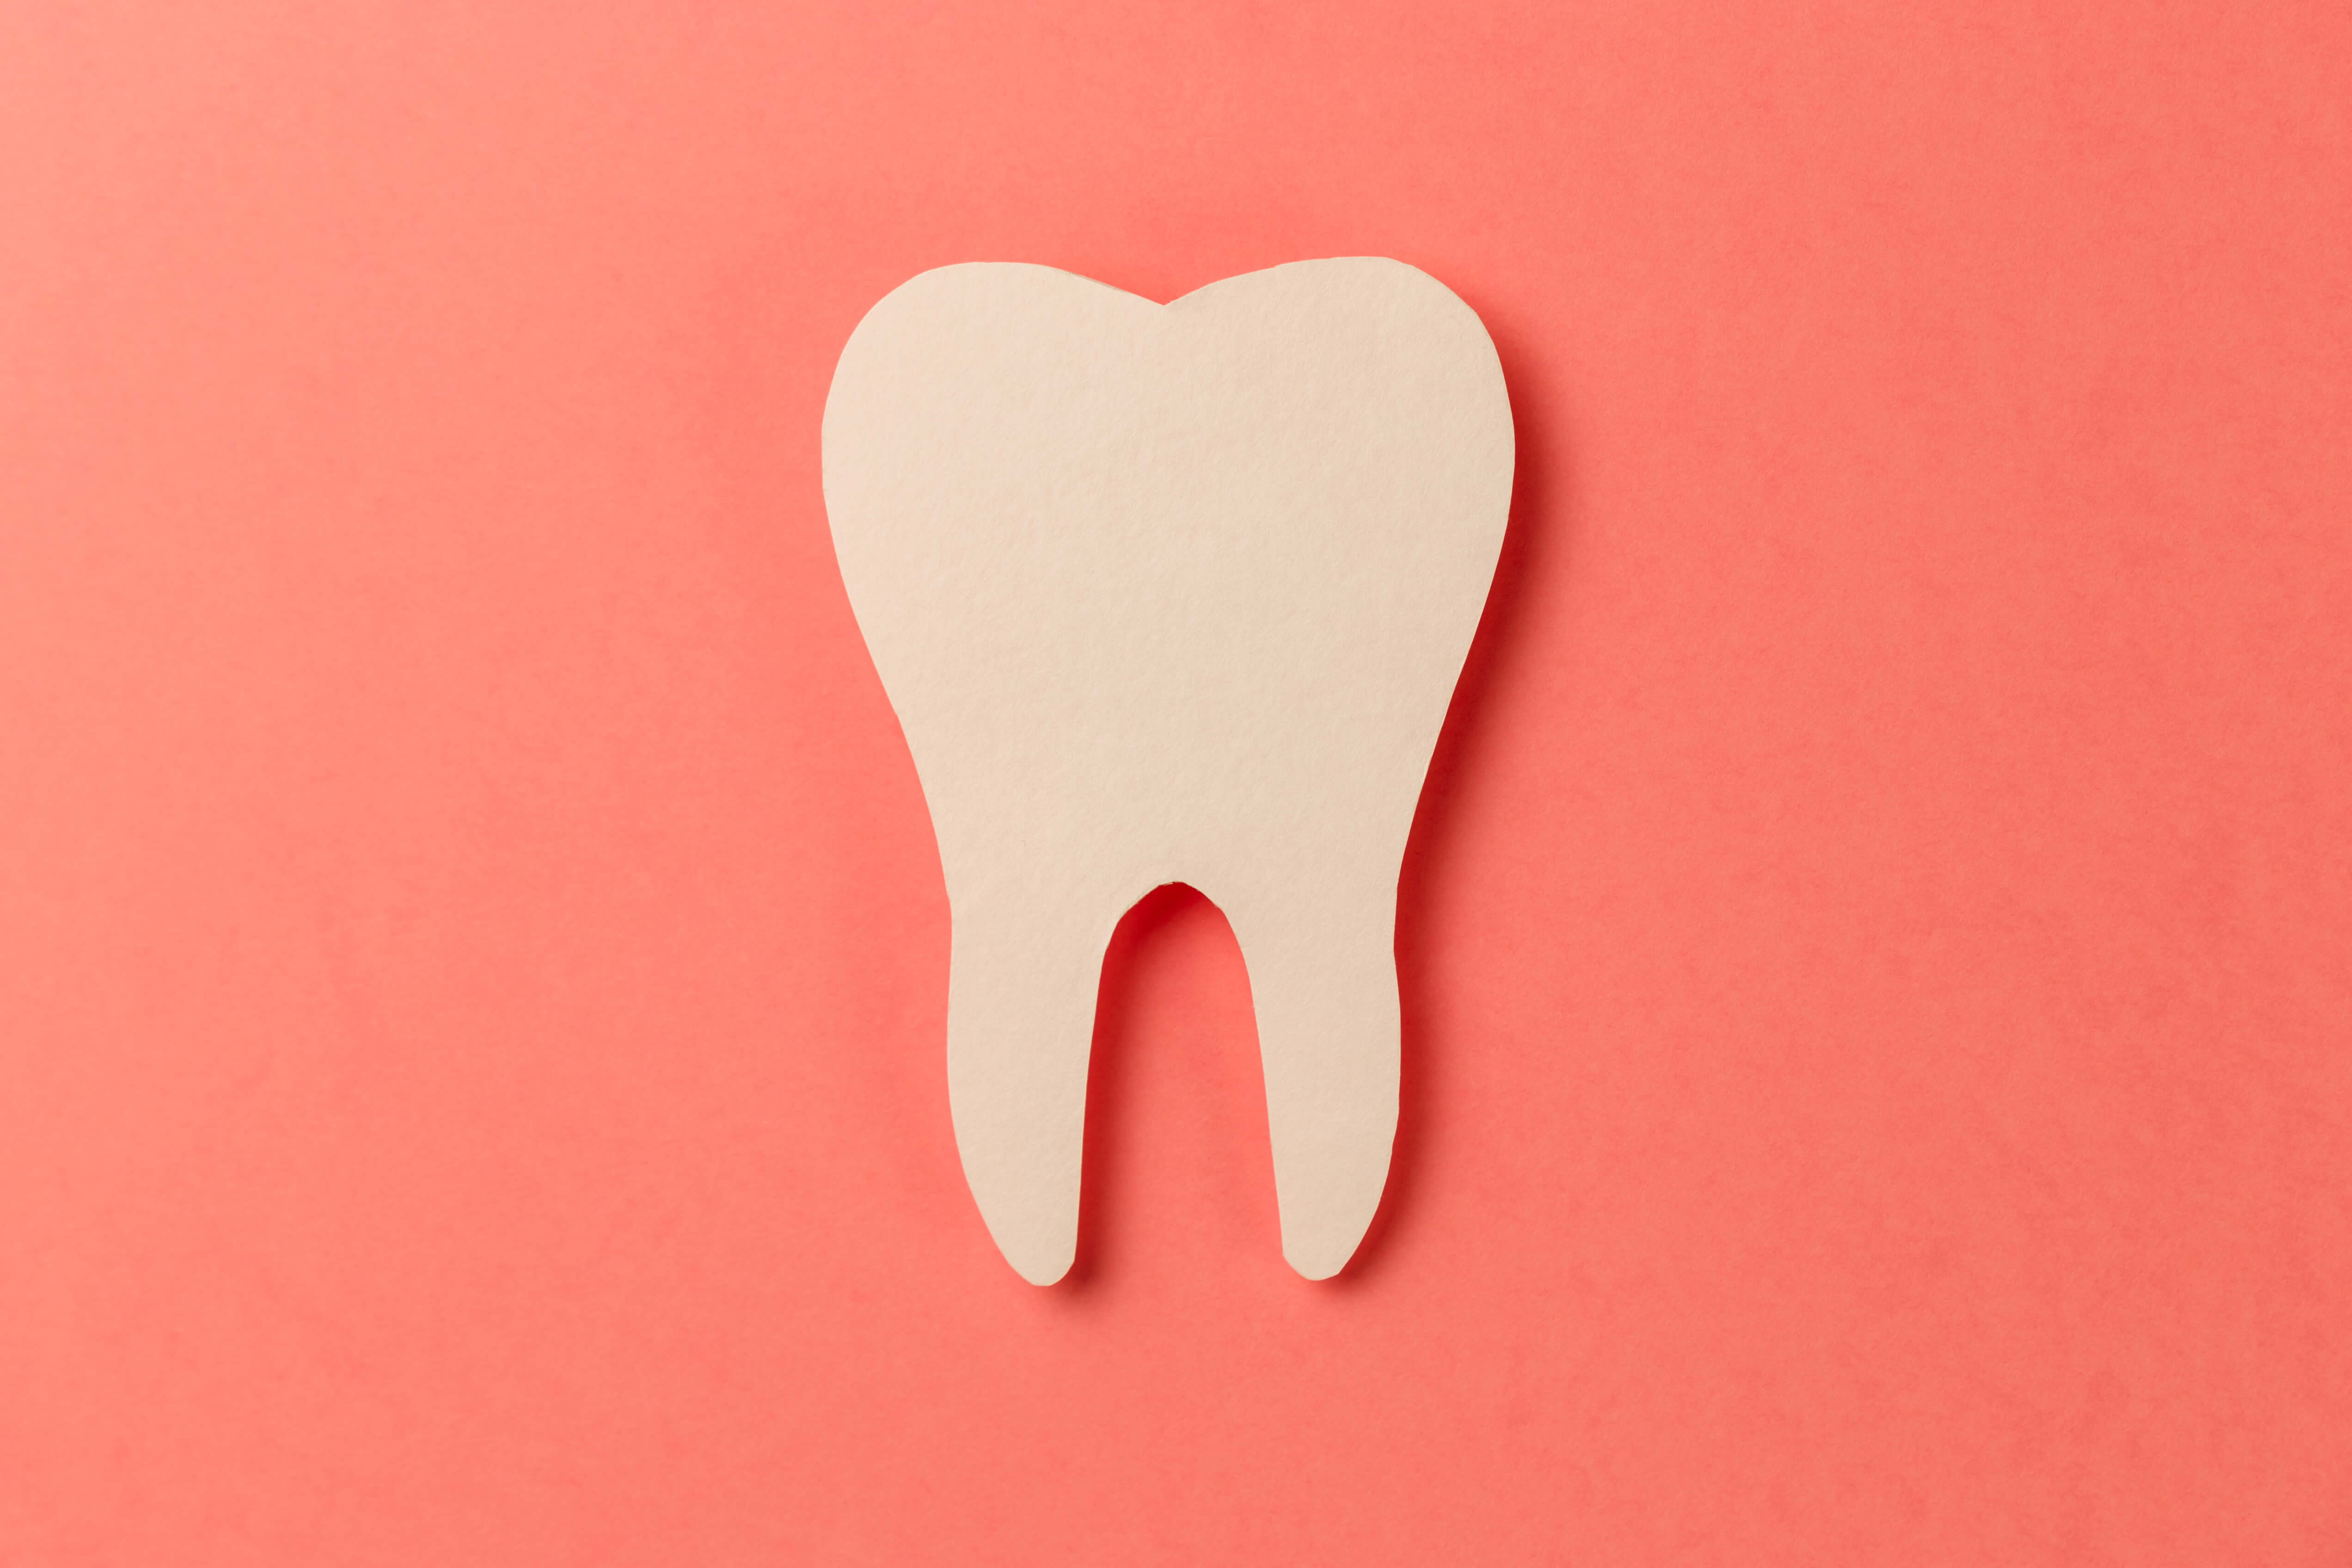 2 Clear Ways to Know If You Have a Cavity